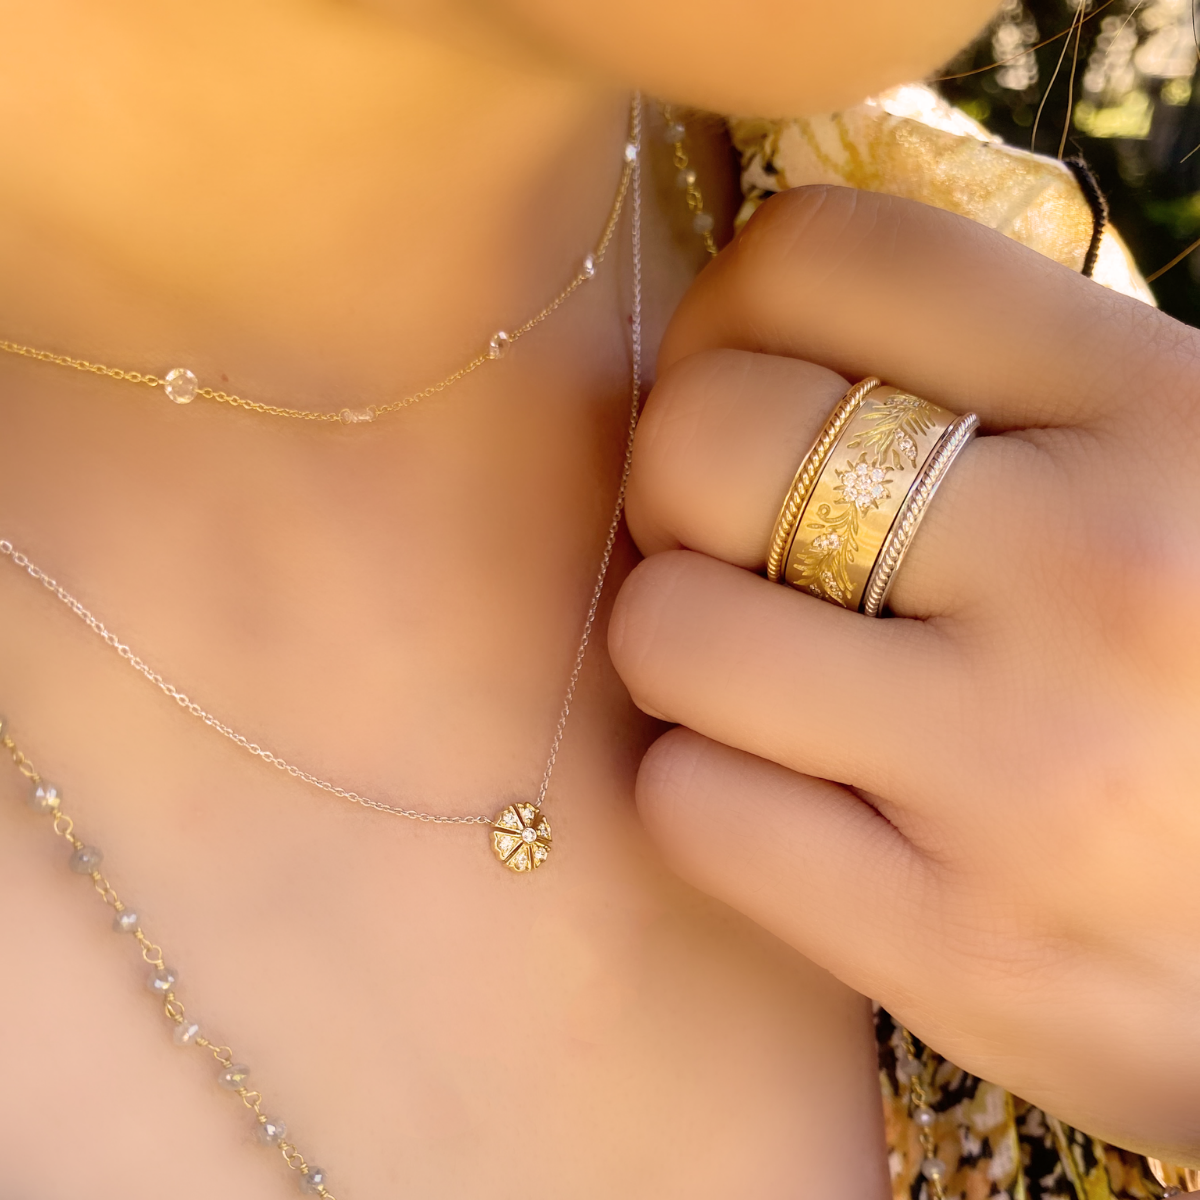 Woman's neck and hand with jewelry on it